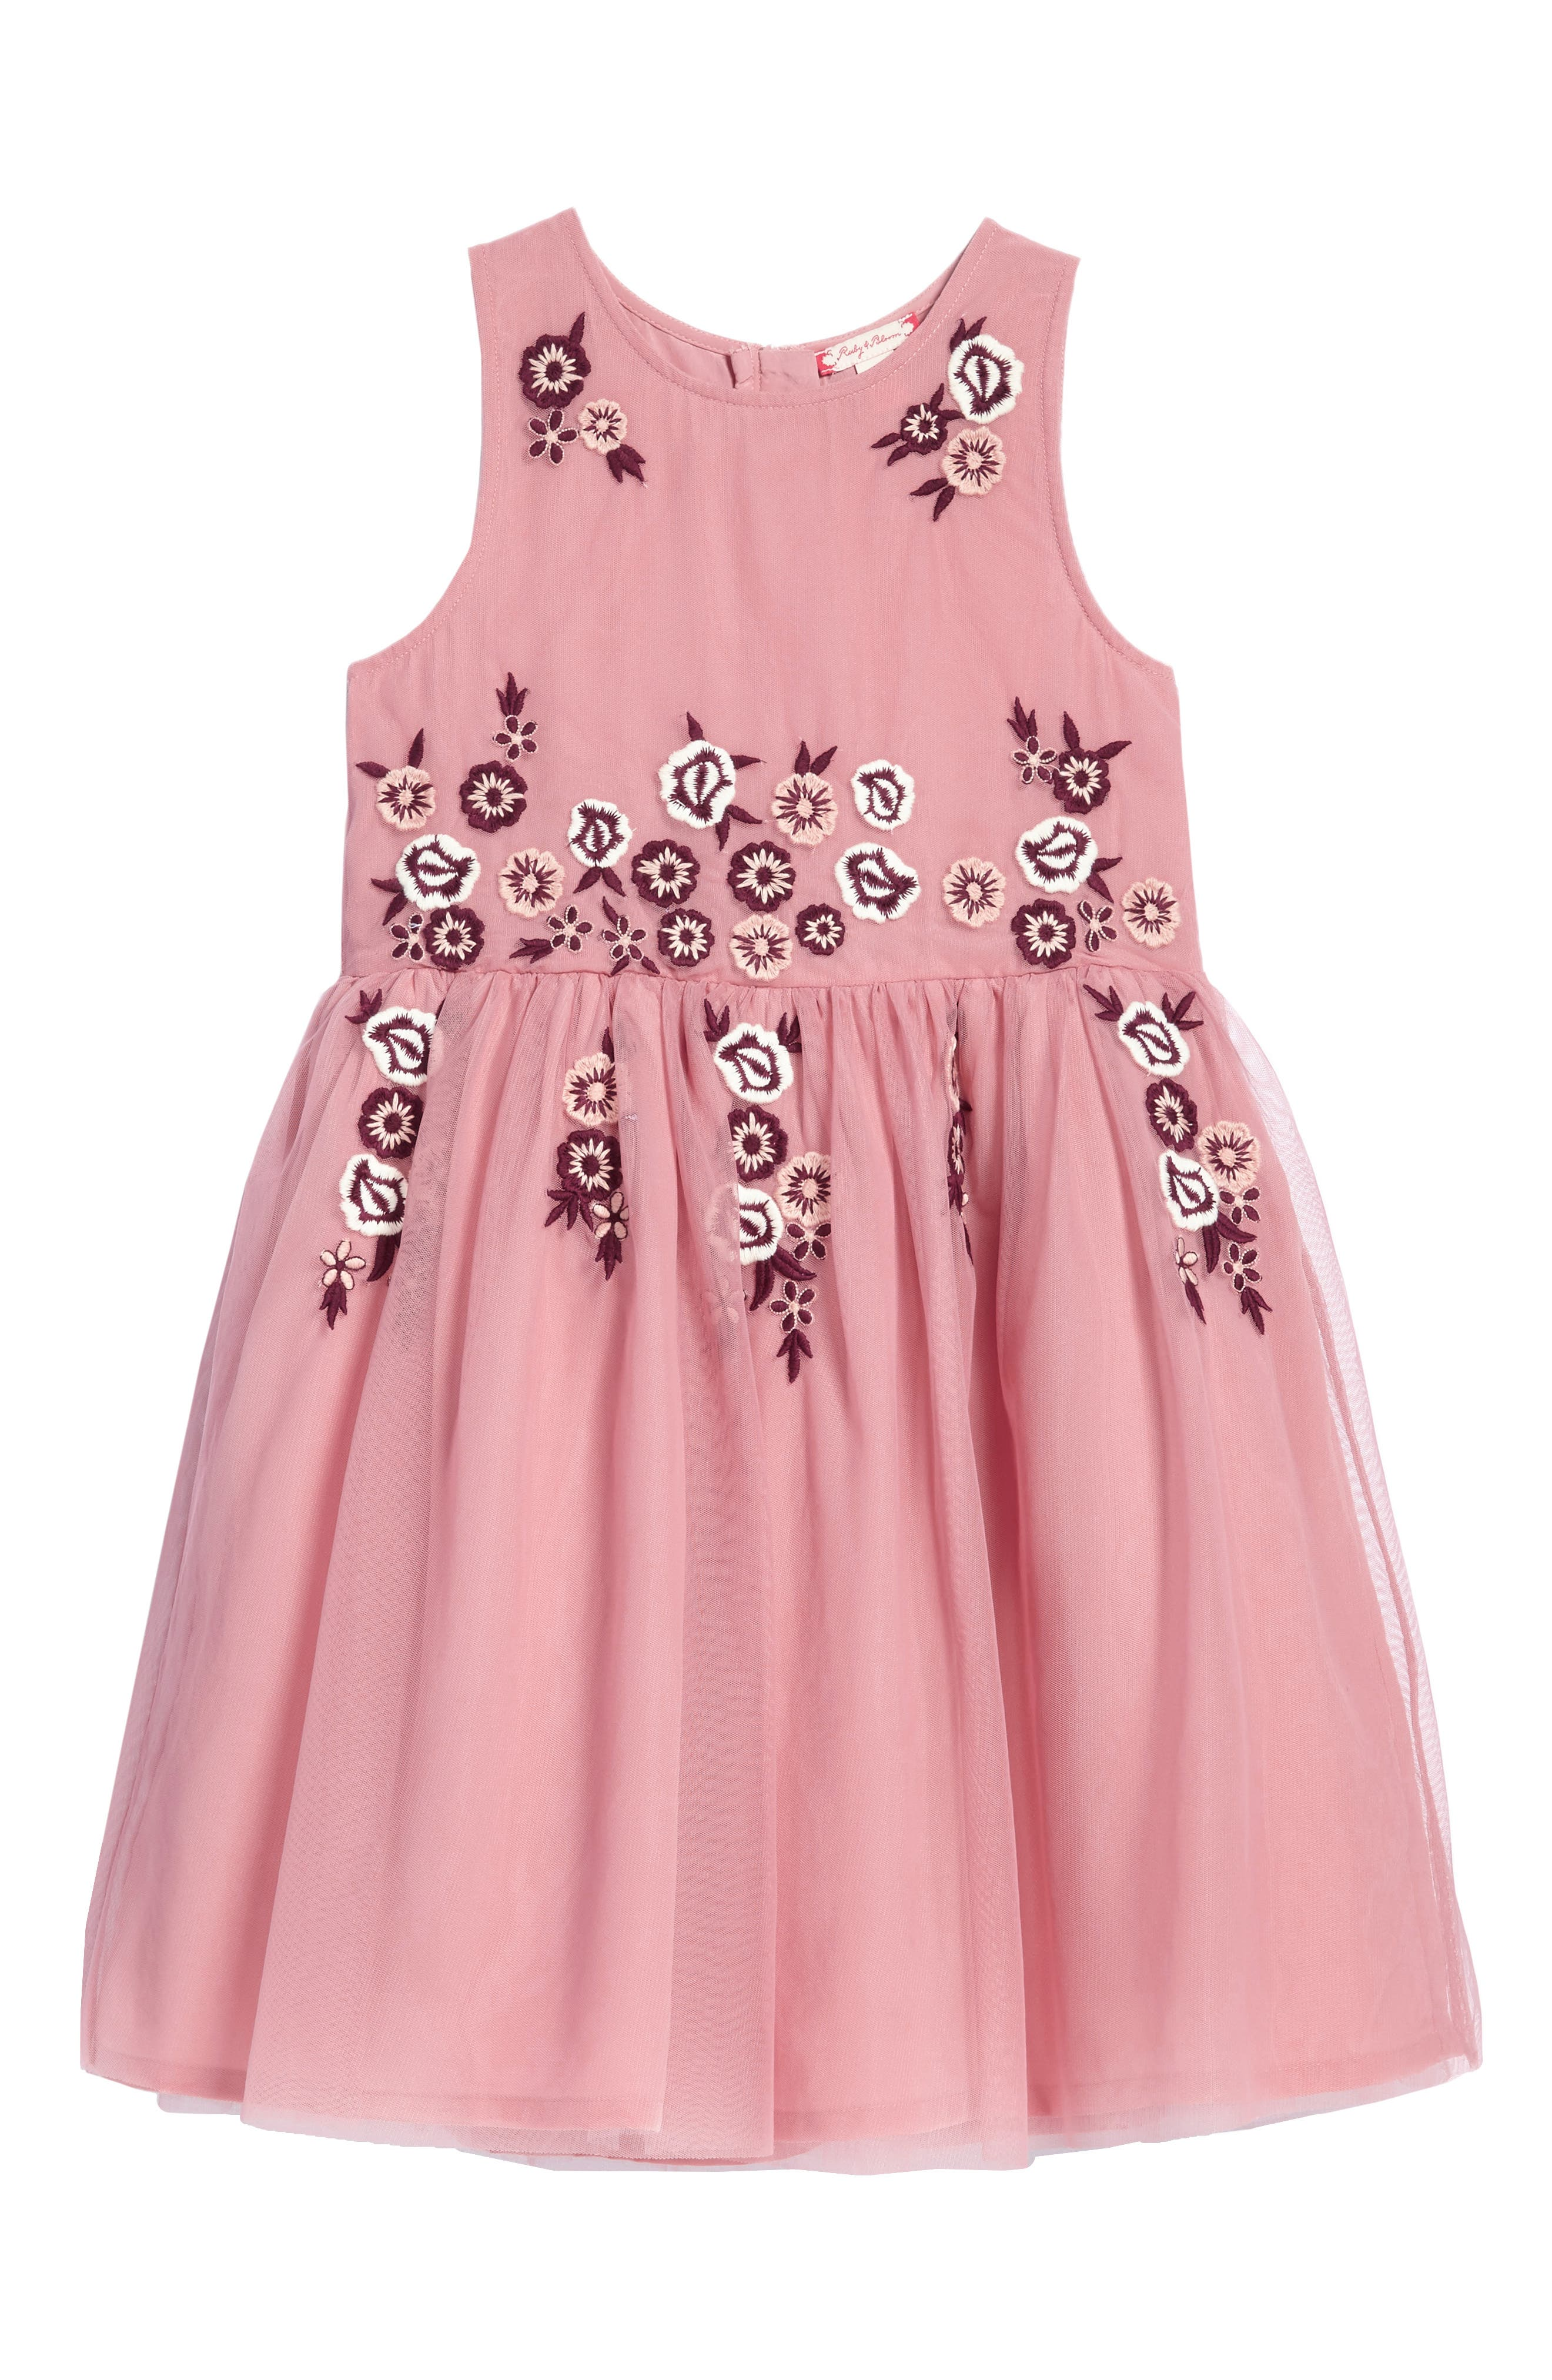 Flower Embroidered Dress,                             Main thumbnail 1, color,                             660